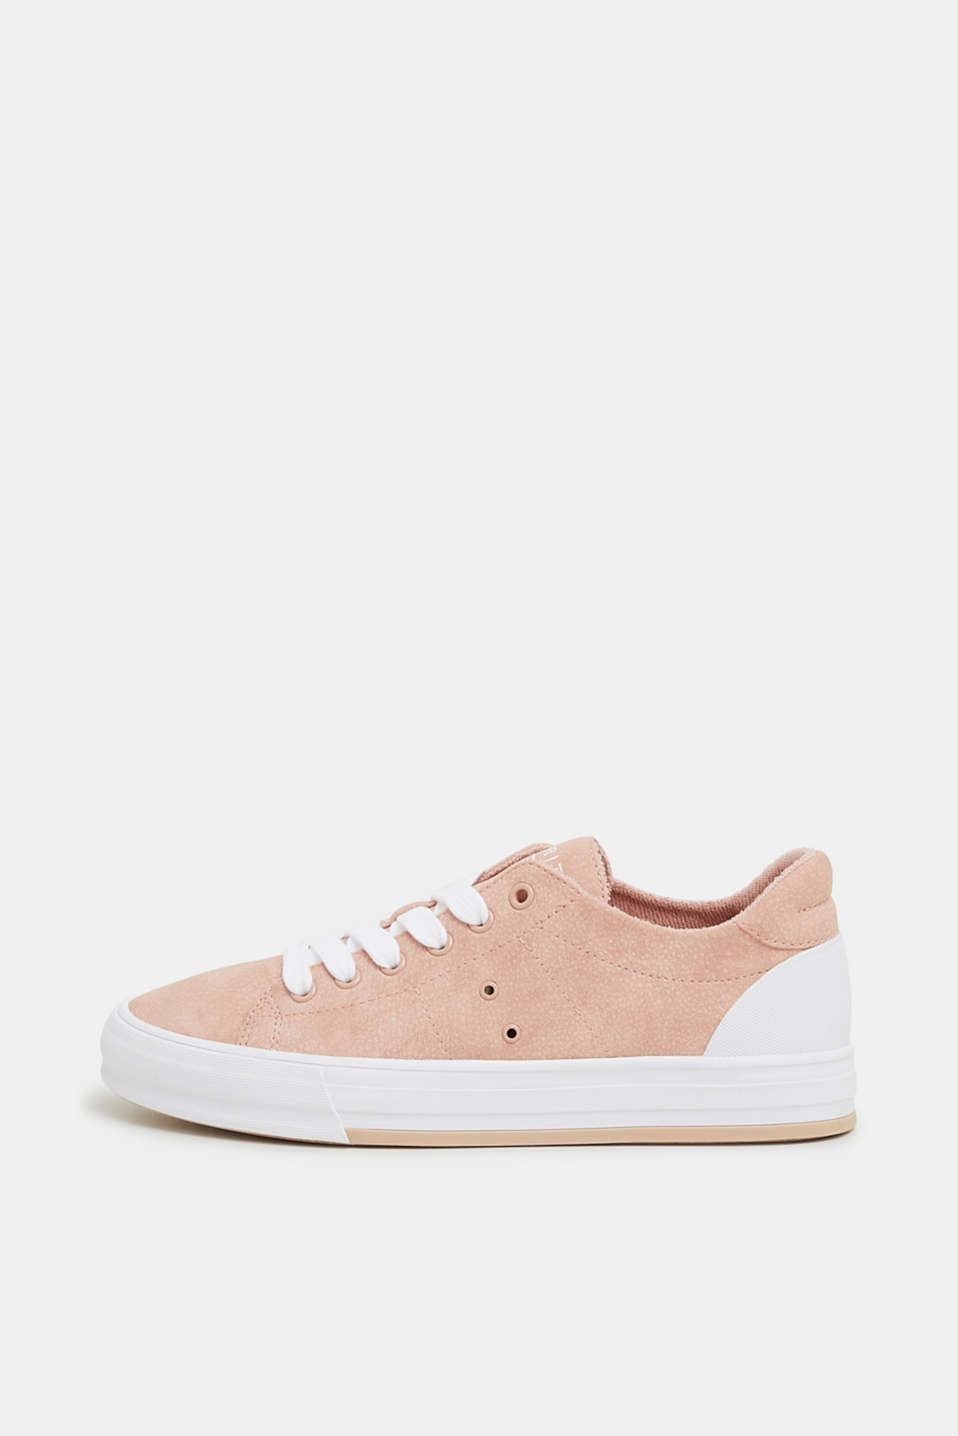 Esprit - Lace-up trainers in faux nubuck leather